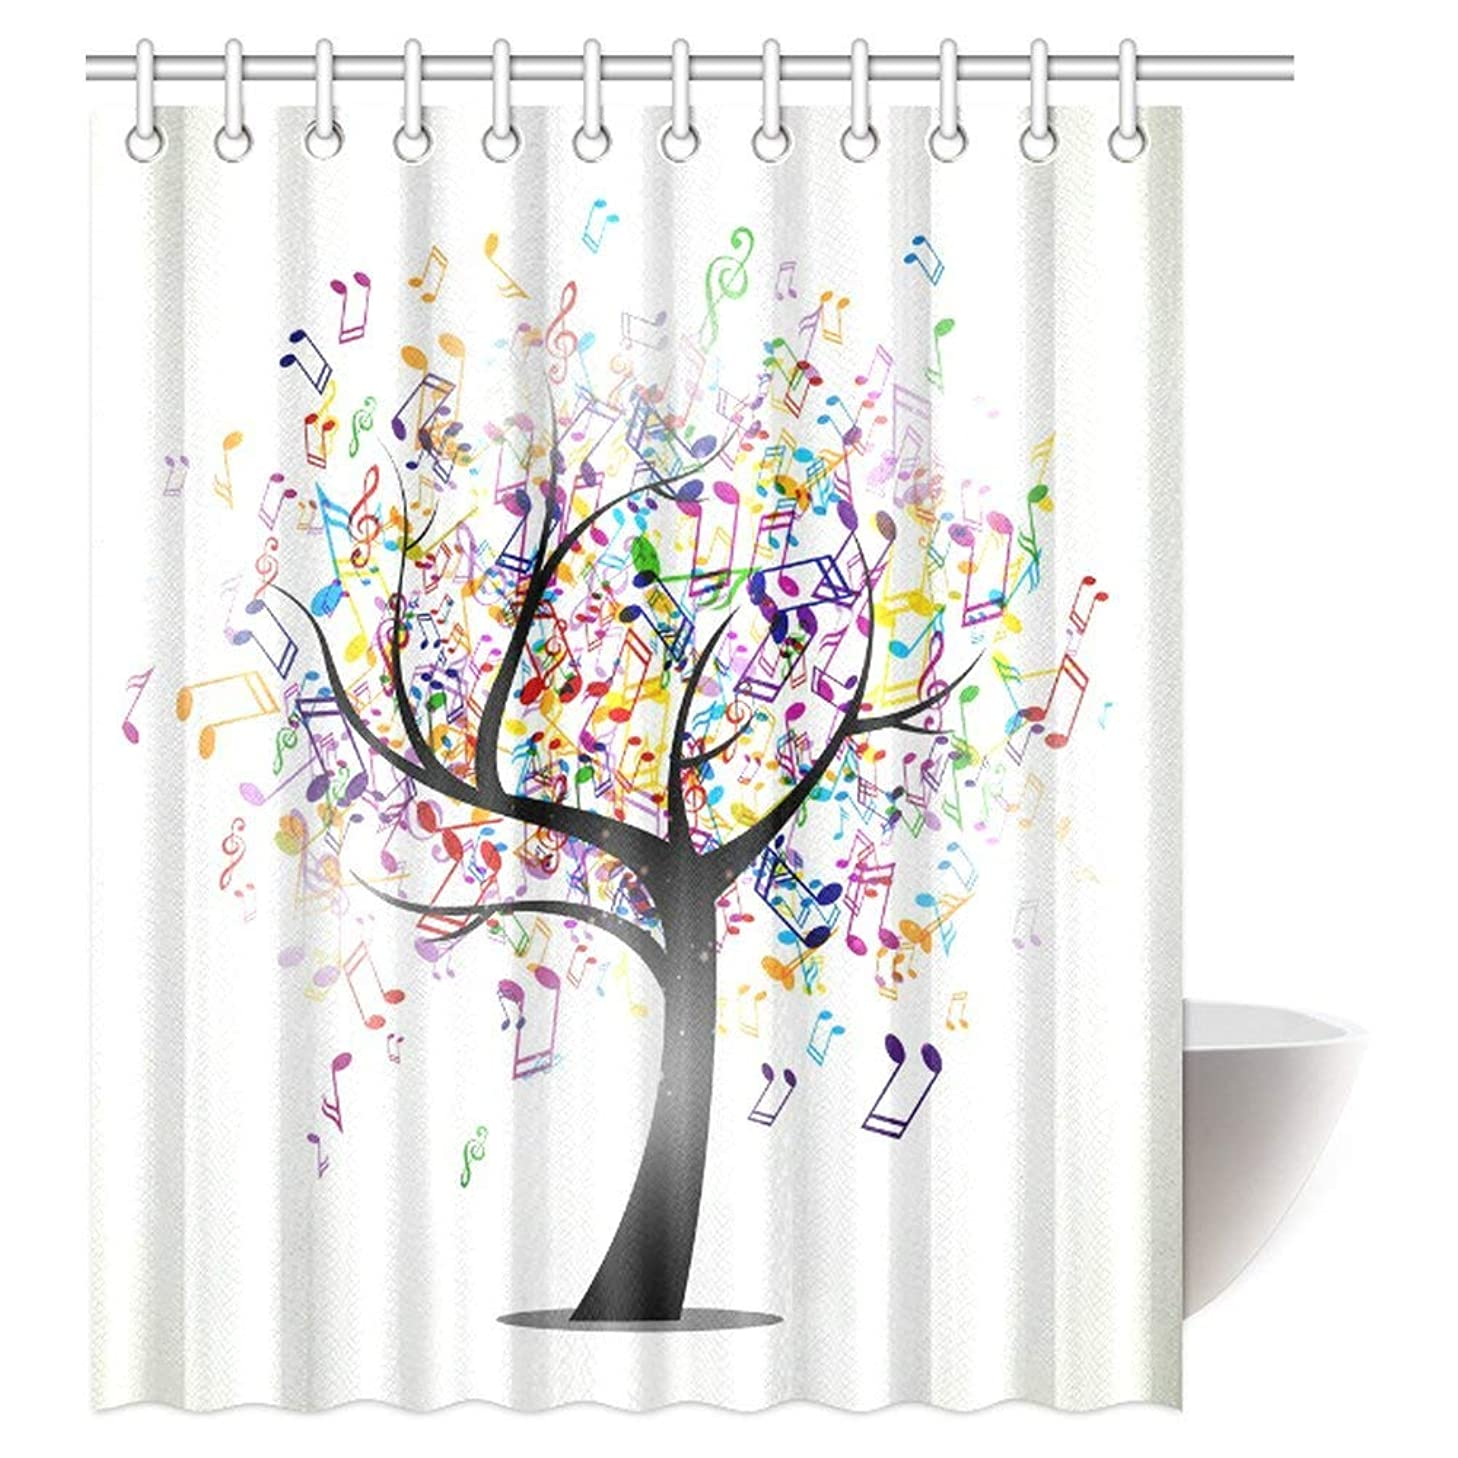 INTERESTPRINT Music Shower Curtain, Tree of Life with Musical Notes Branch Happy Jolly Celebrating Fabric Bathroom Shower Curtain Set with Hooks, 60 X 72 Inches